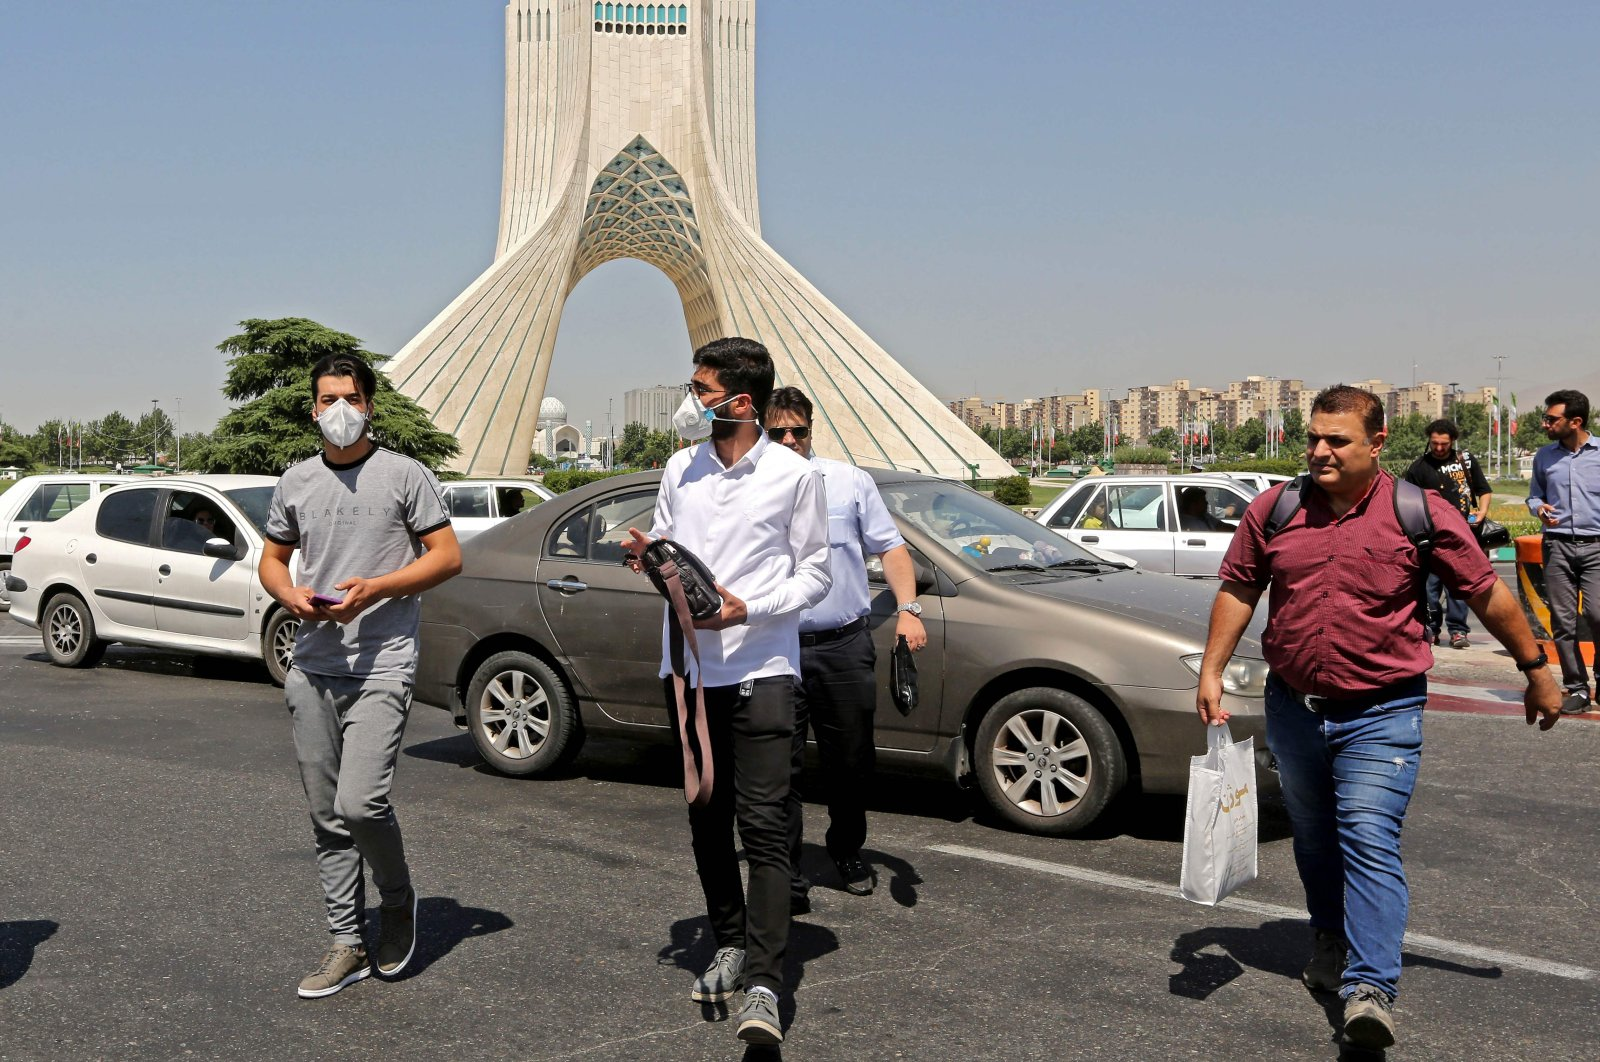 Iranians, mostly wearing face masks, are pictured at Azadi square in the capital Tehran, on June 16, 2020, amid the coronavirus pandemic. (AFP Photo)